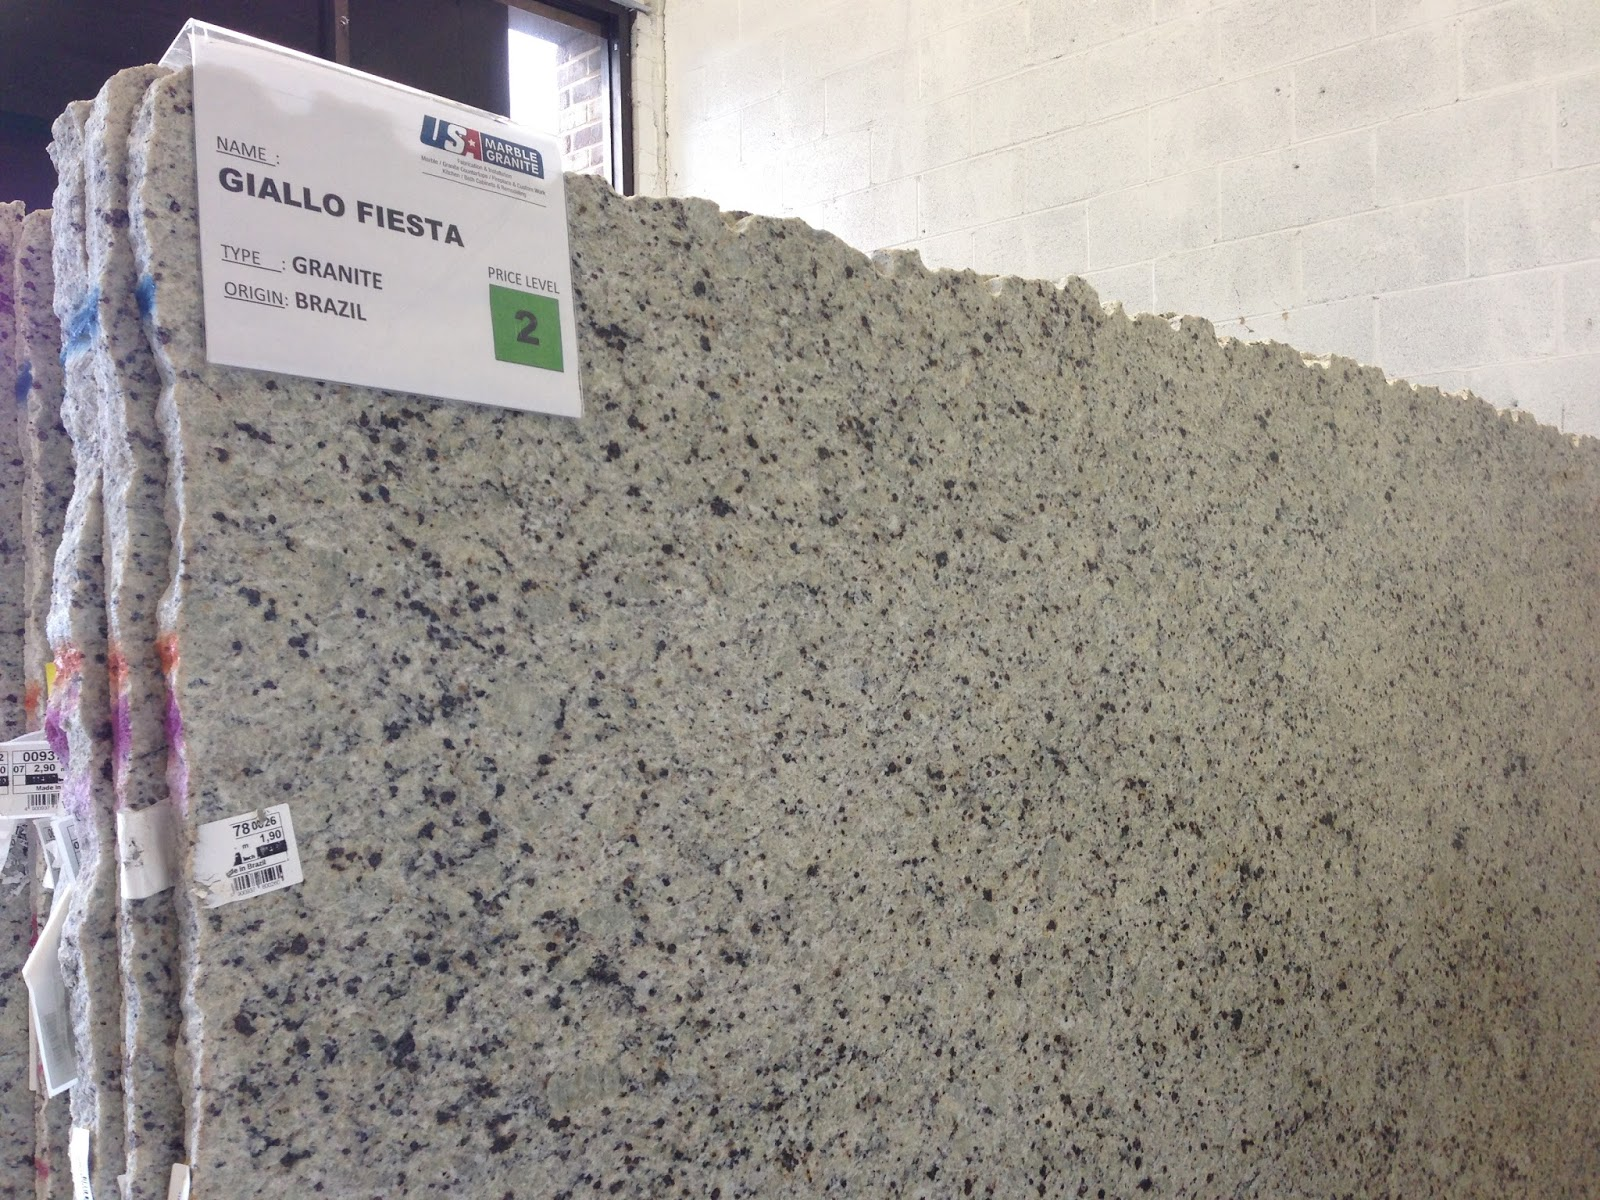 ... Half The Price Of The Lowest Price Granites We Considered. Like Several  Thousand Dollars Saved If We Just Match The Stone And Only Do The New  Peninsula.